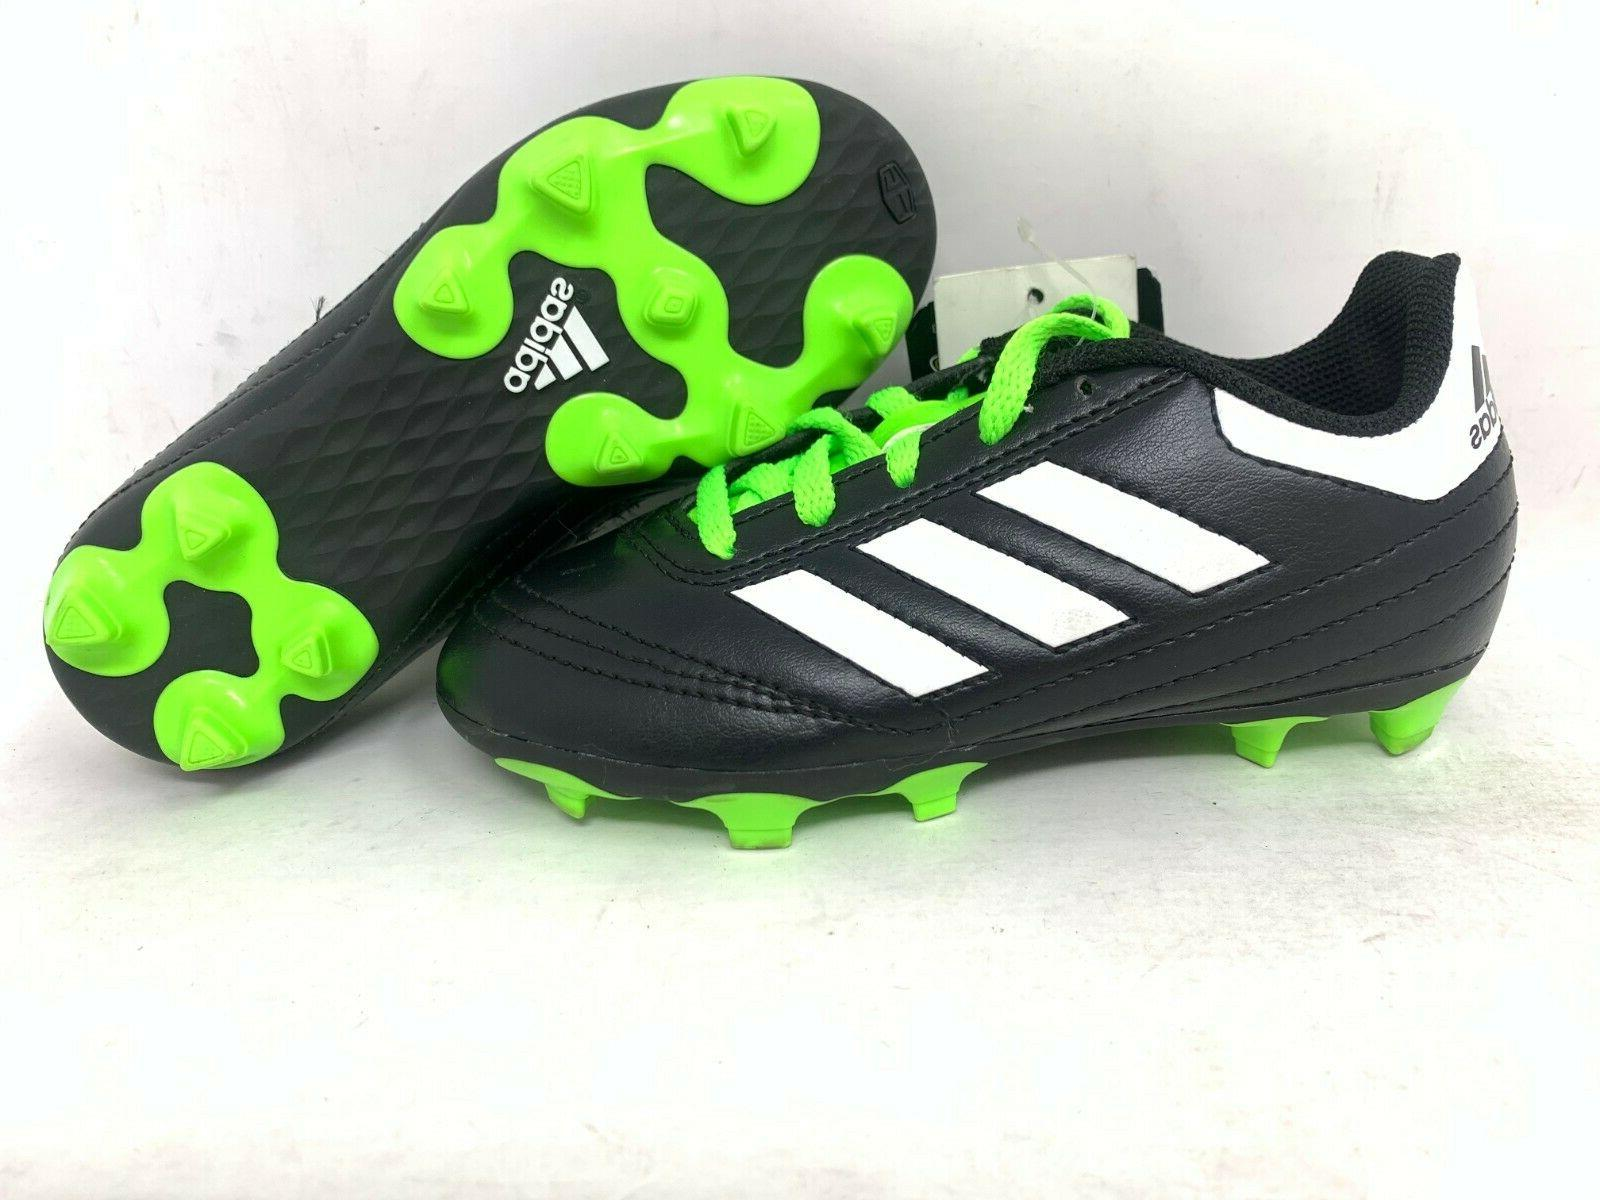 NEW! Goletto Cleats OR Lime/Black A1-14 tz